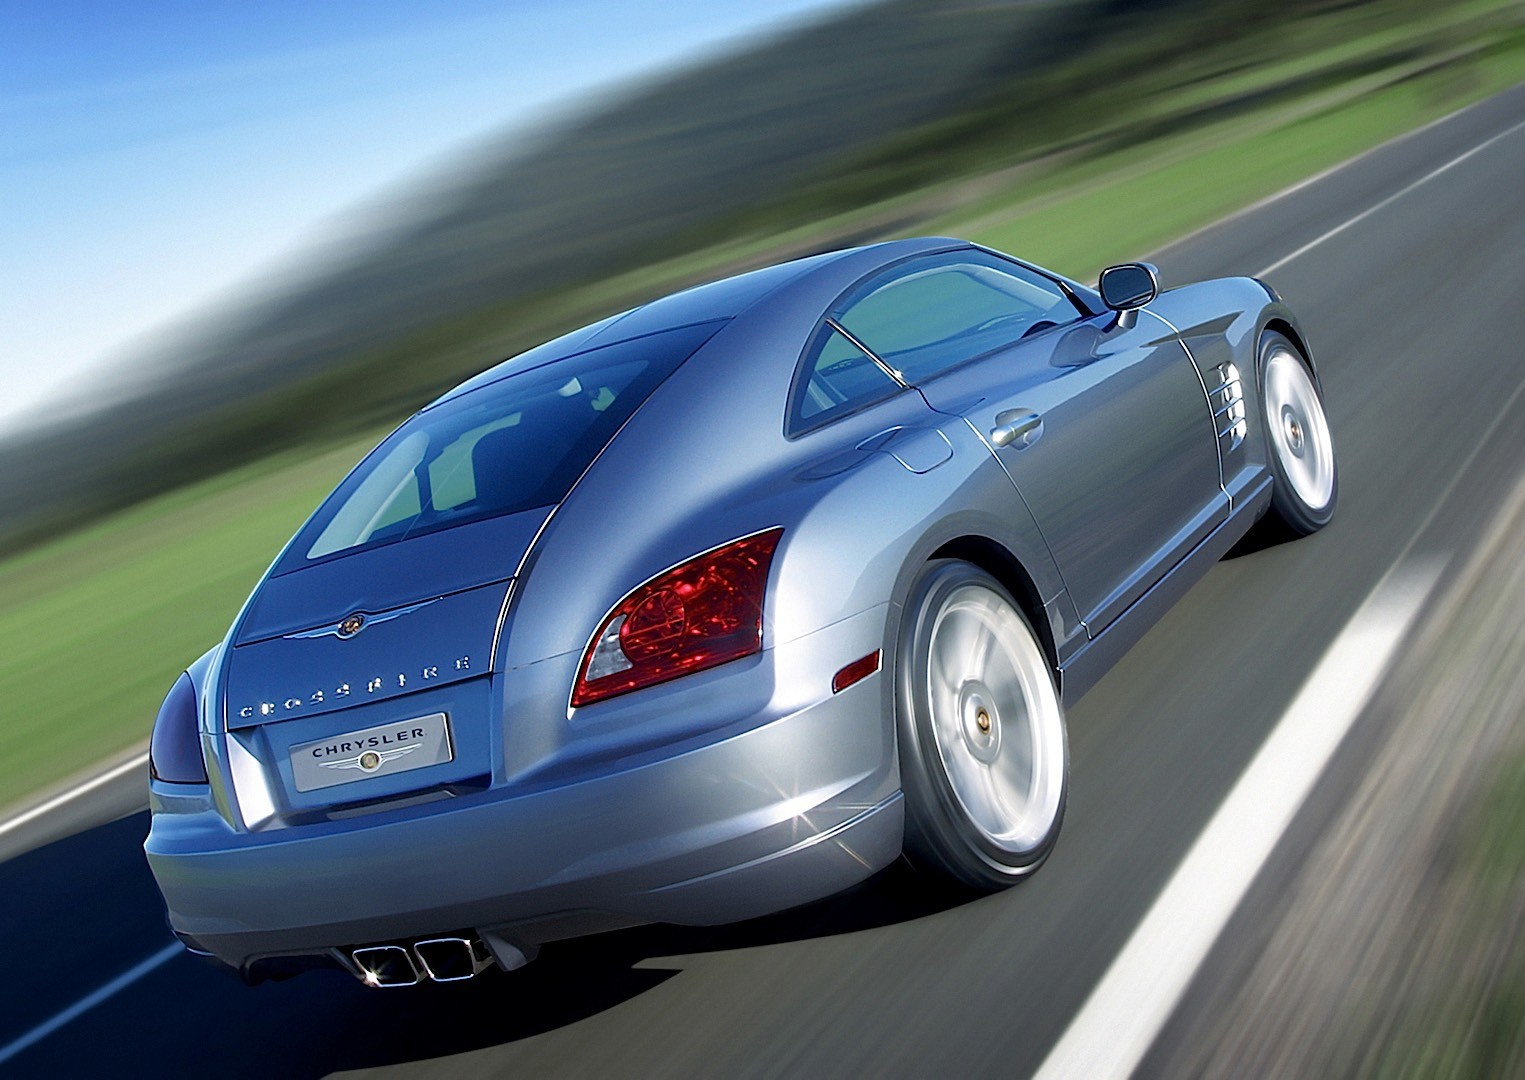 Interesting Collector Cars For Less Than $50k USD - Chrysler Crossfire